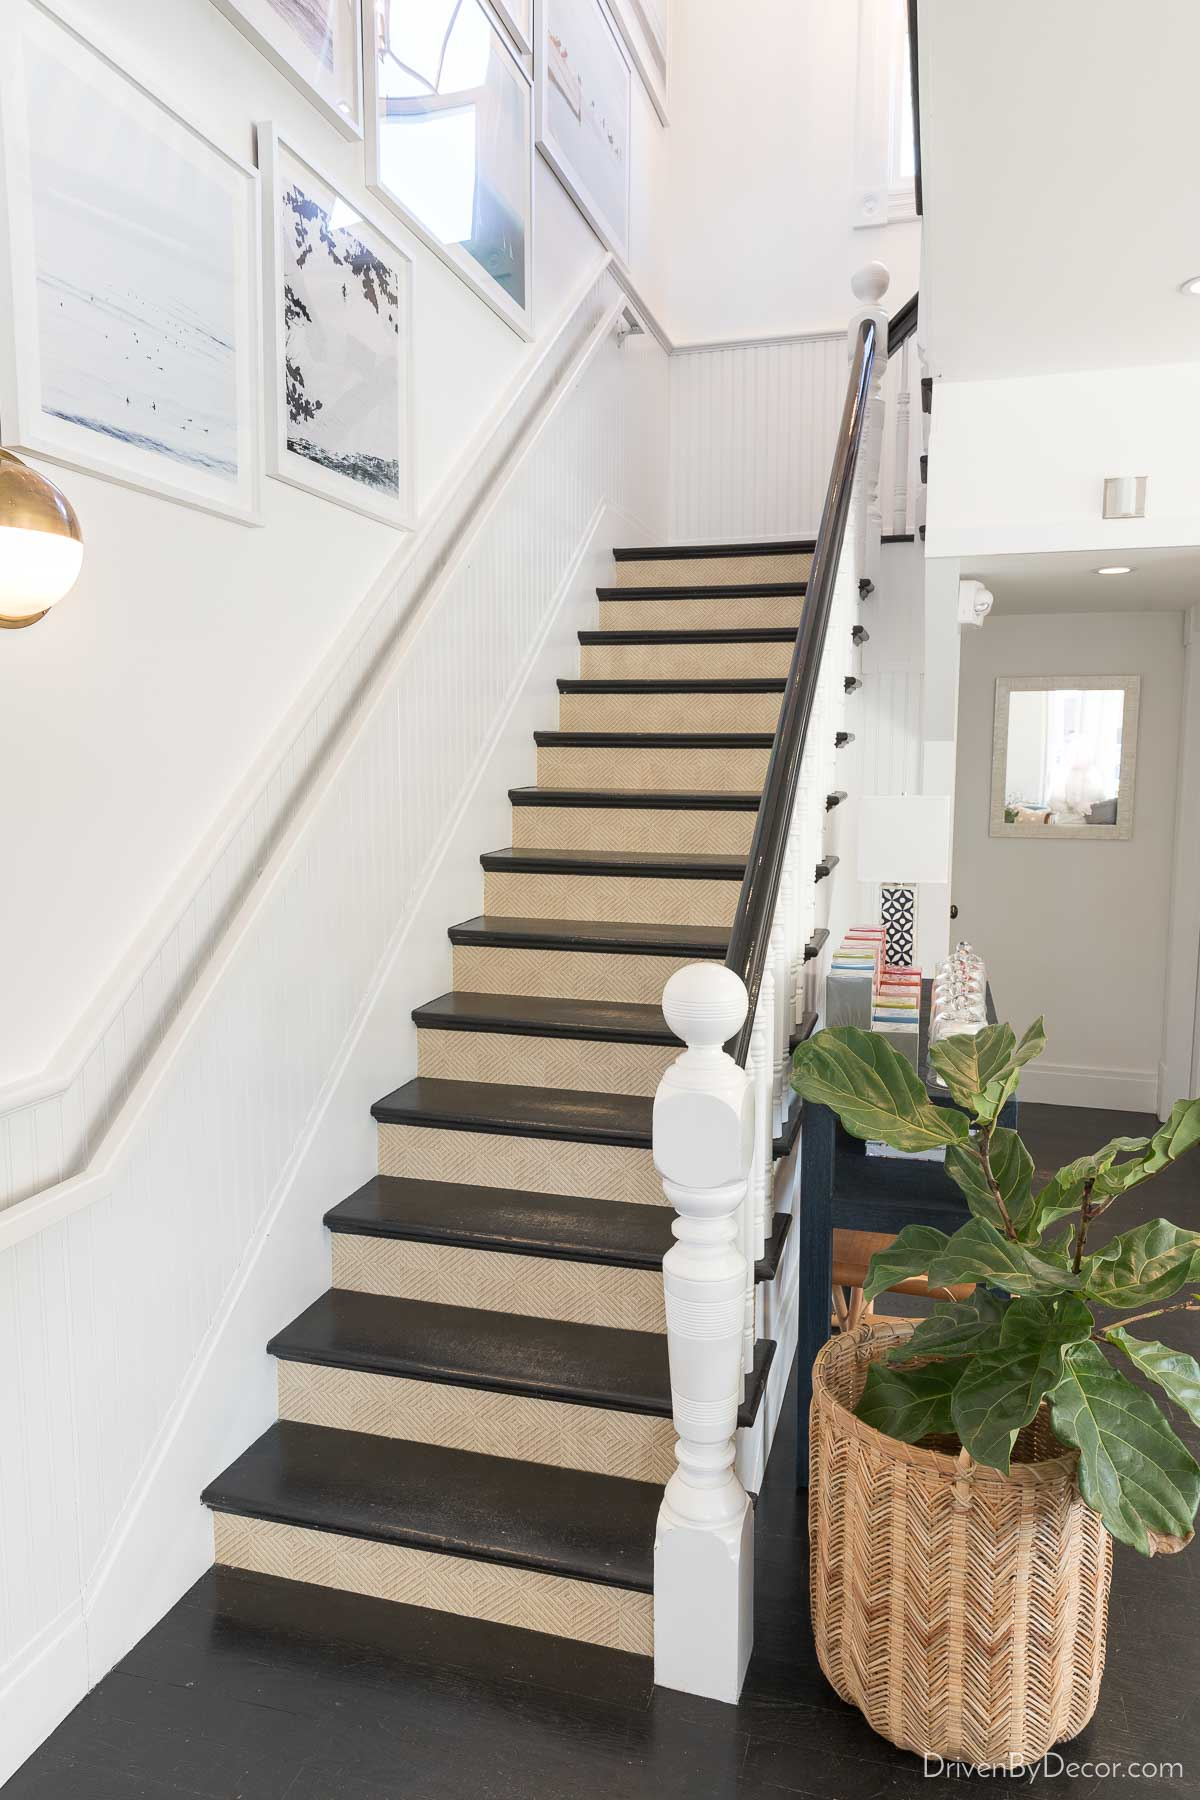 Love the wallpaper idea of adding a subtle patterned paper to the stair risers!